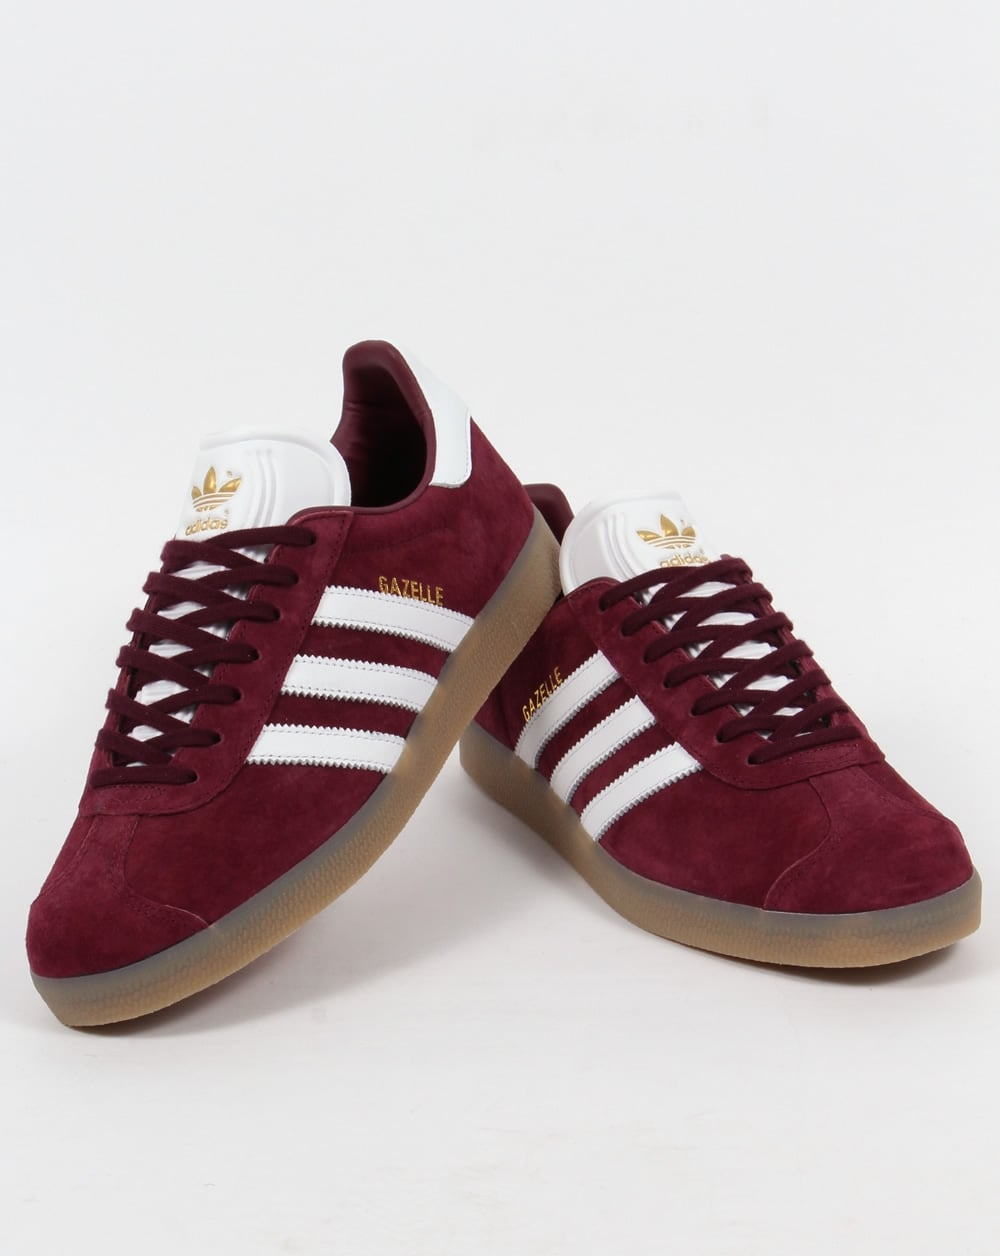 Circa Shoes For Sale Uk